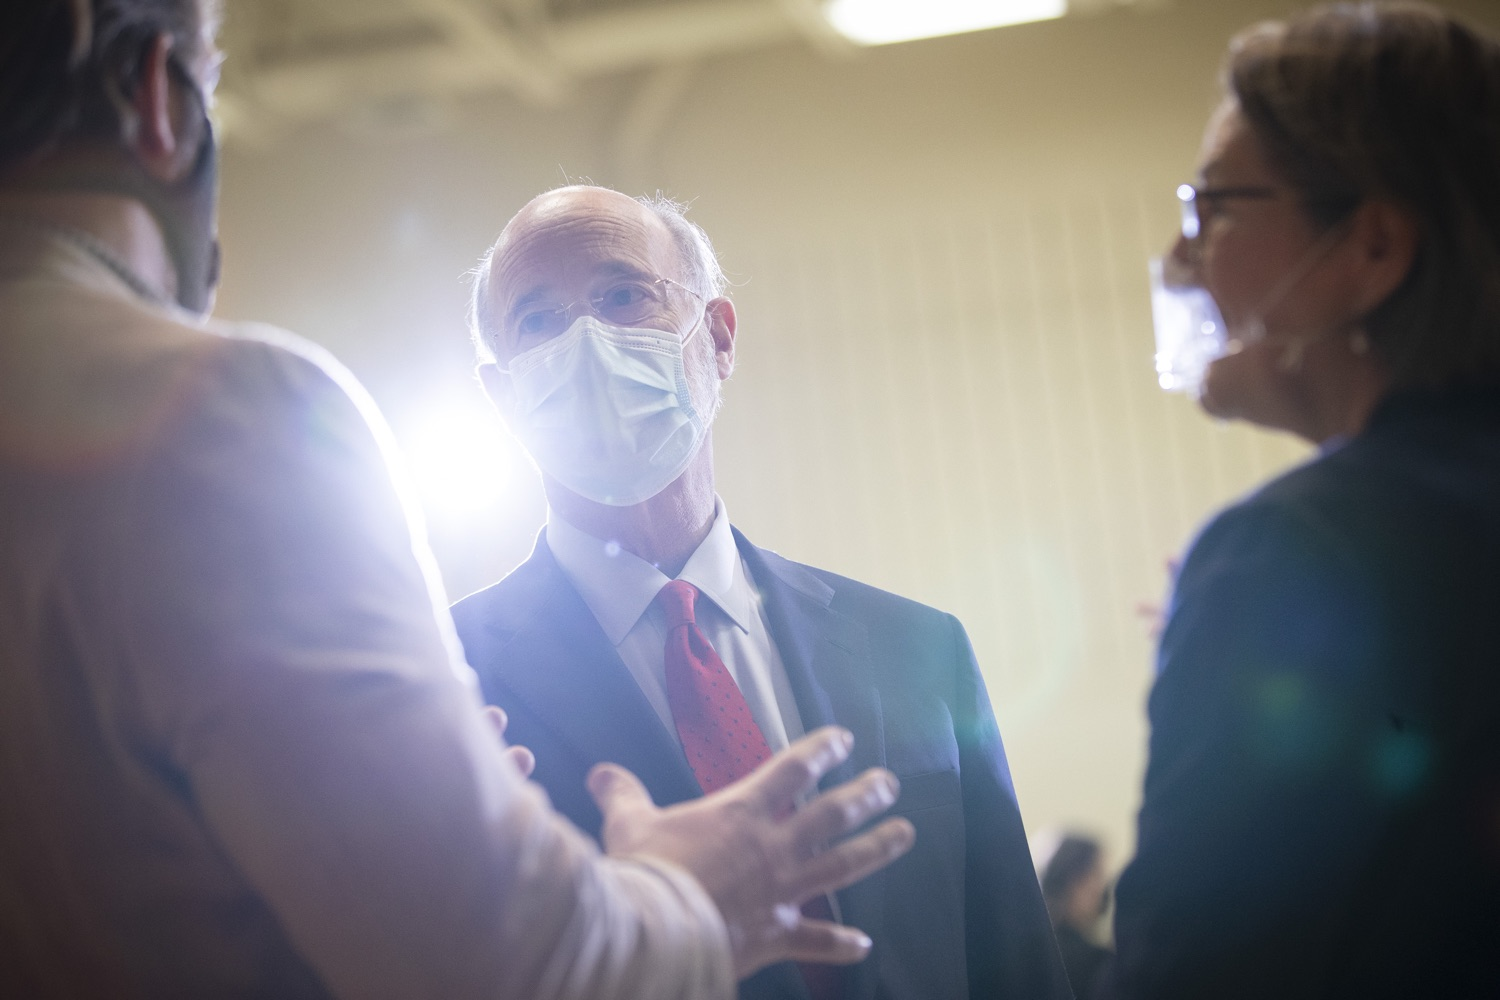 """<a href=""""https://filesource.wostreaming.net/commonwealthofpa/photo/18310_gov_adult_use_cannabis_dz_022.jpg"""" target=""""_blank"""">⇣Download Photo<br></a>Governor Tom Wolf touring The Mountain Center.Governor Tom Wolf visited The Mountain Center in Tobyhanna, Monroe County today to talk about the economic growth potential and restorative justice benefits of legalizing adult-use cannabis, something the state General Assembly has not yet done despite multiple requests from the governor and Lieutenant Governor John Fetterman to take up legislation this fall.  Tobyhanna, PA  October 13, 2020"""